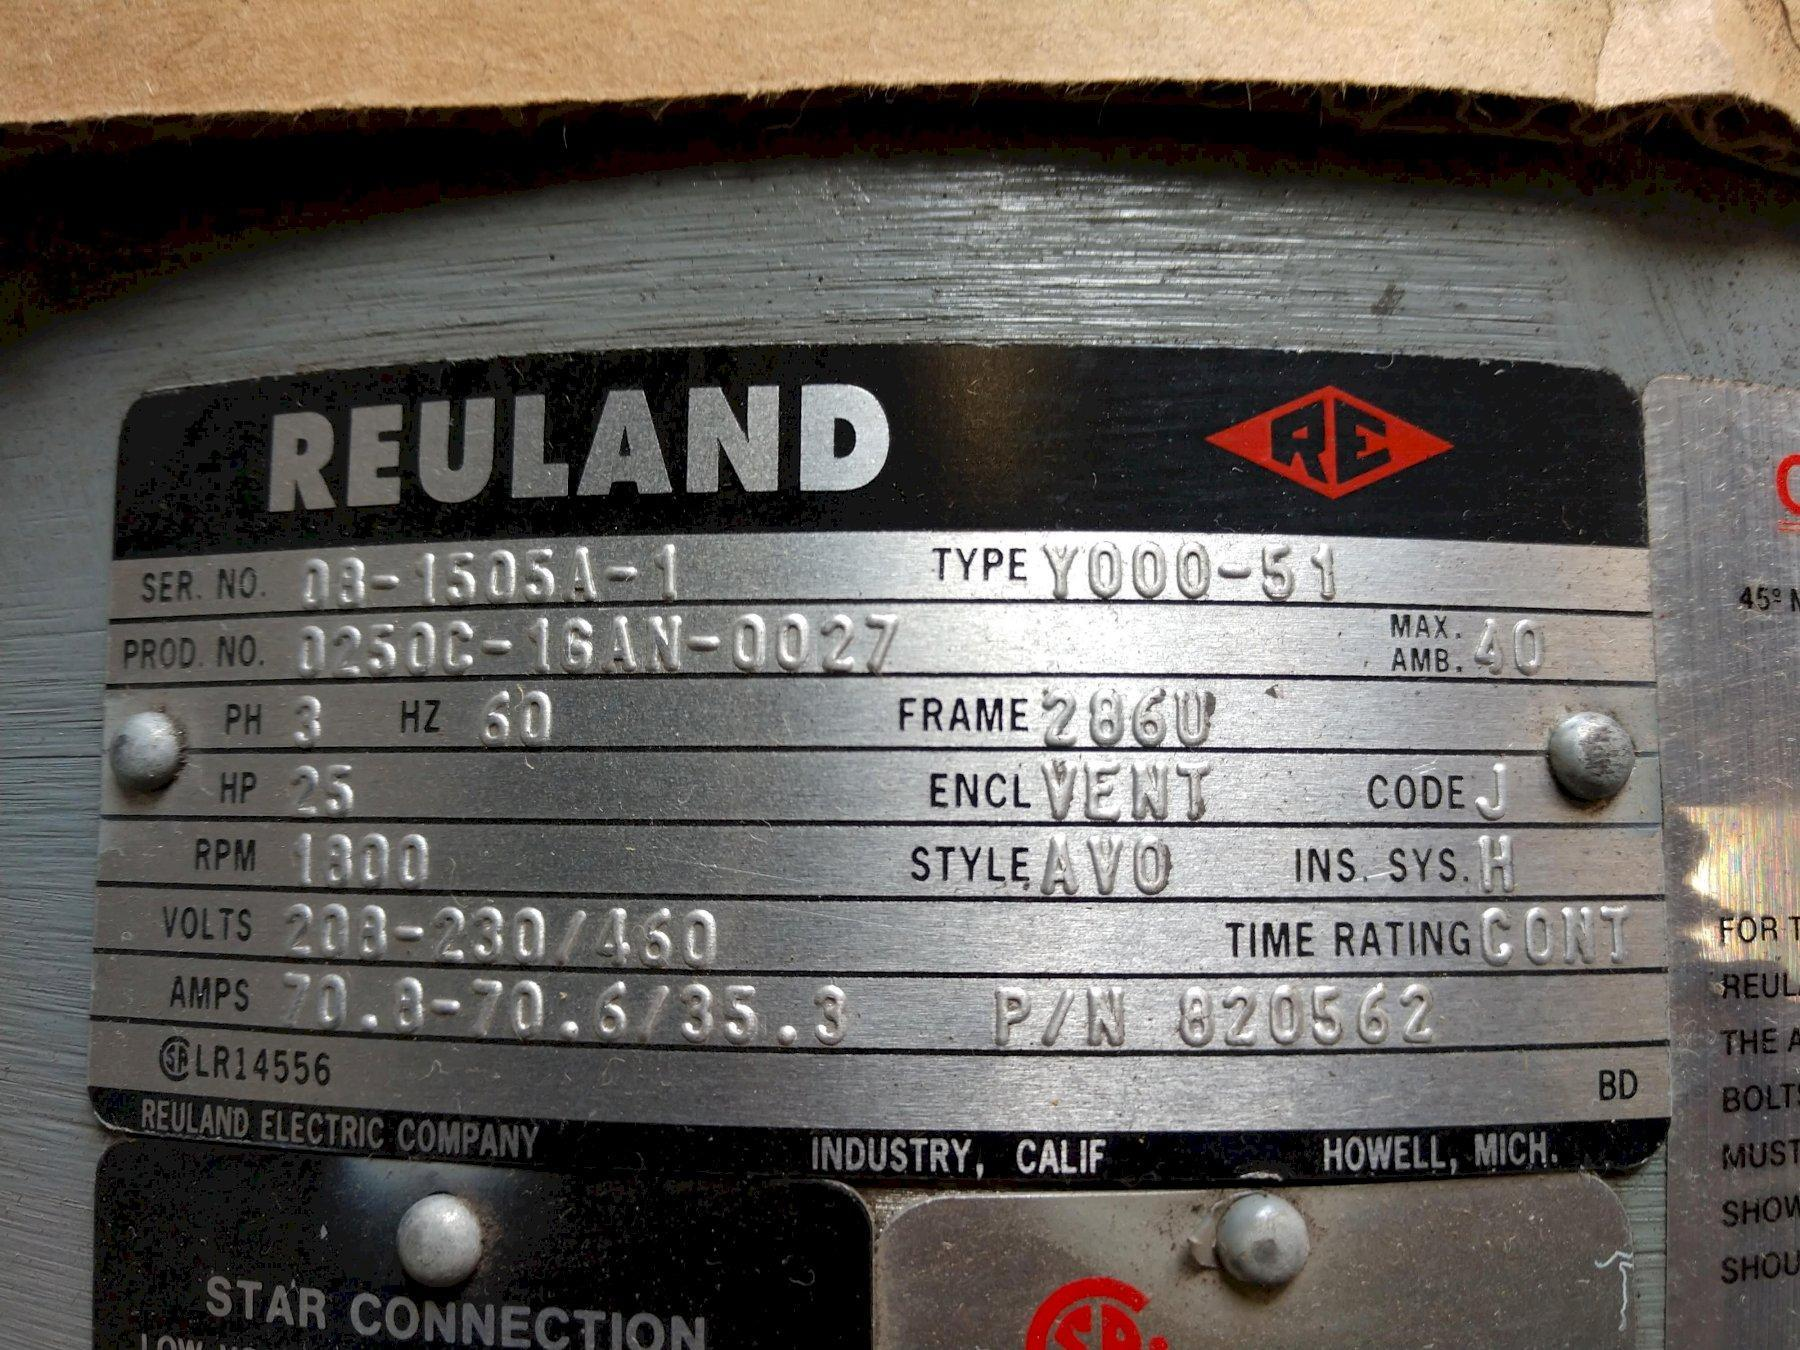 25 HP REULAND MODEL #Y000-51 ELECTRIC AC MOTOR WITH VICKERS #2520V PUMP MOUNT: STOCK 13417